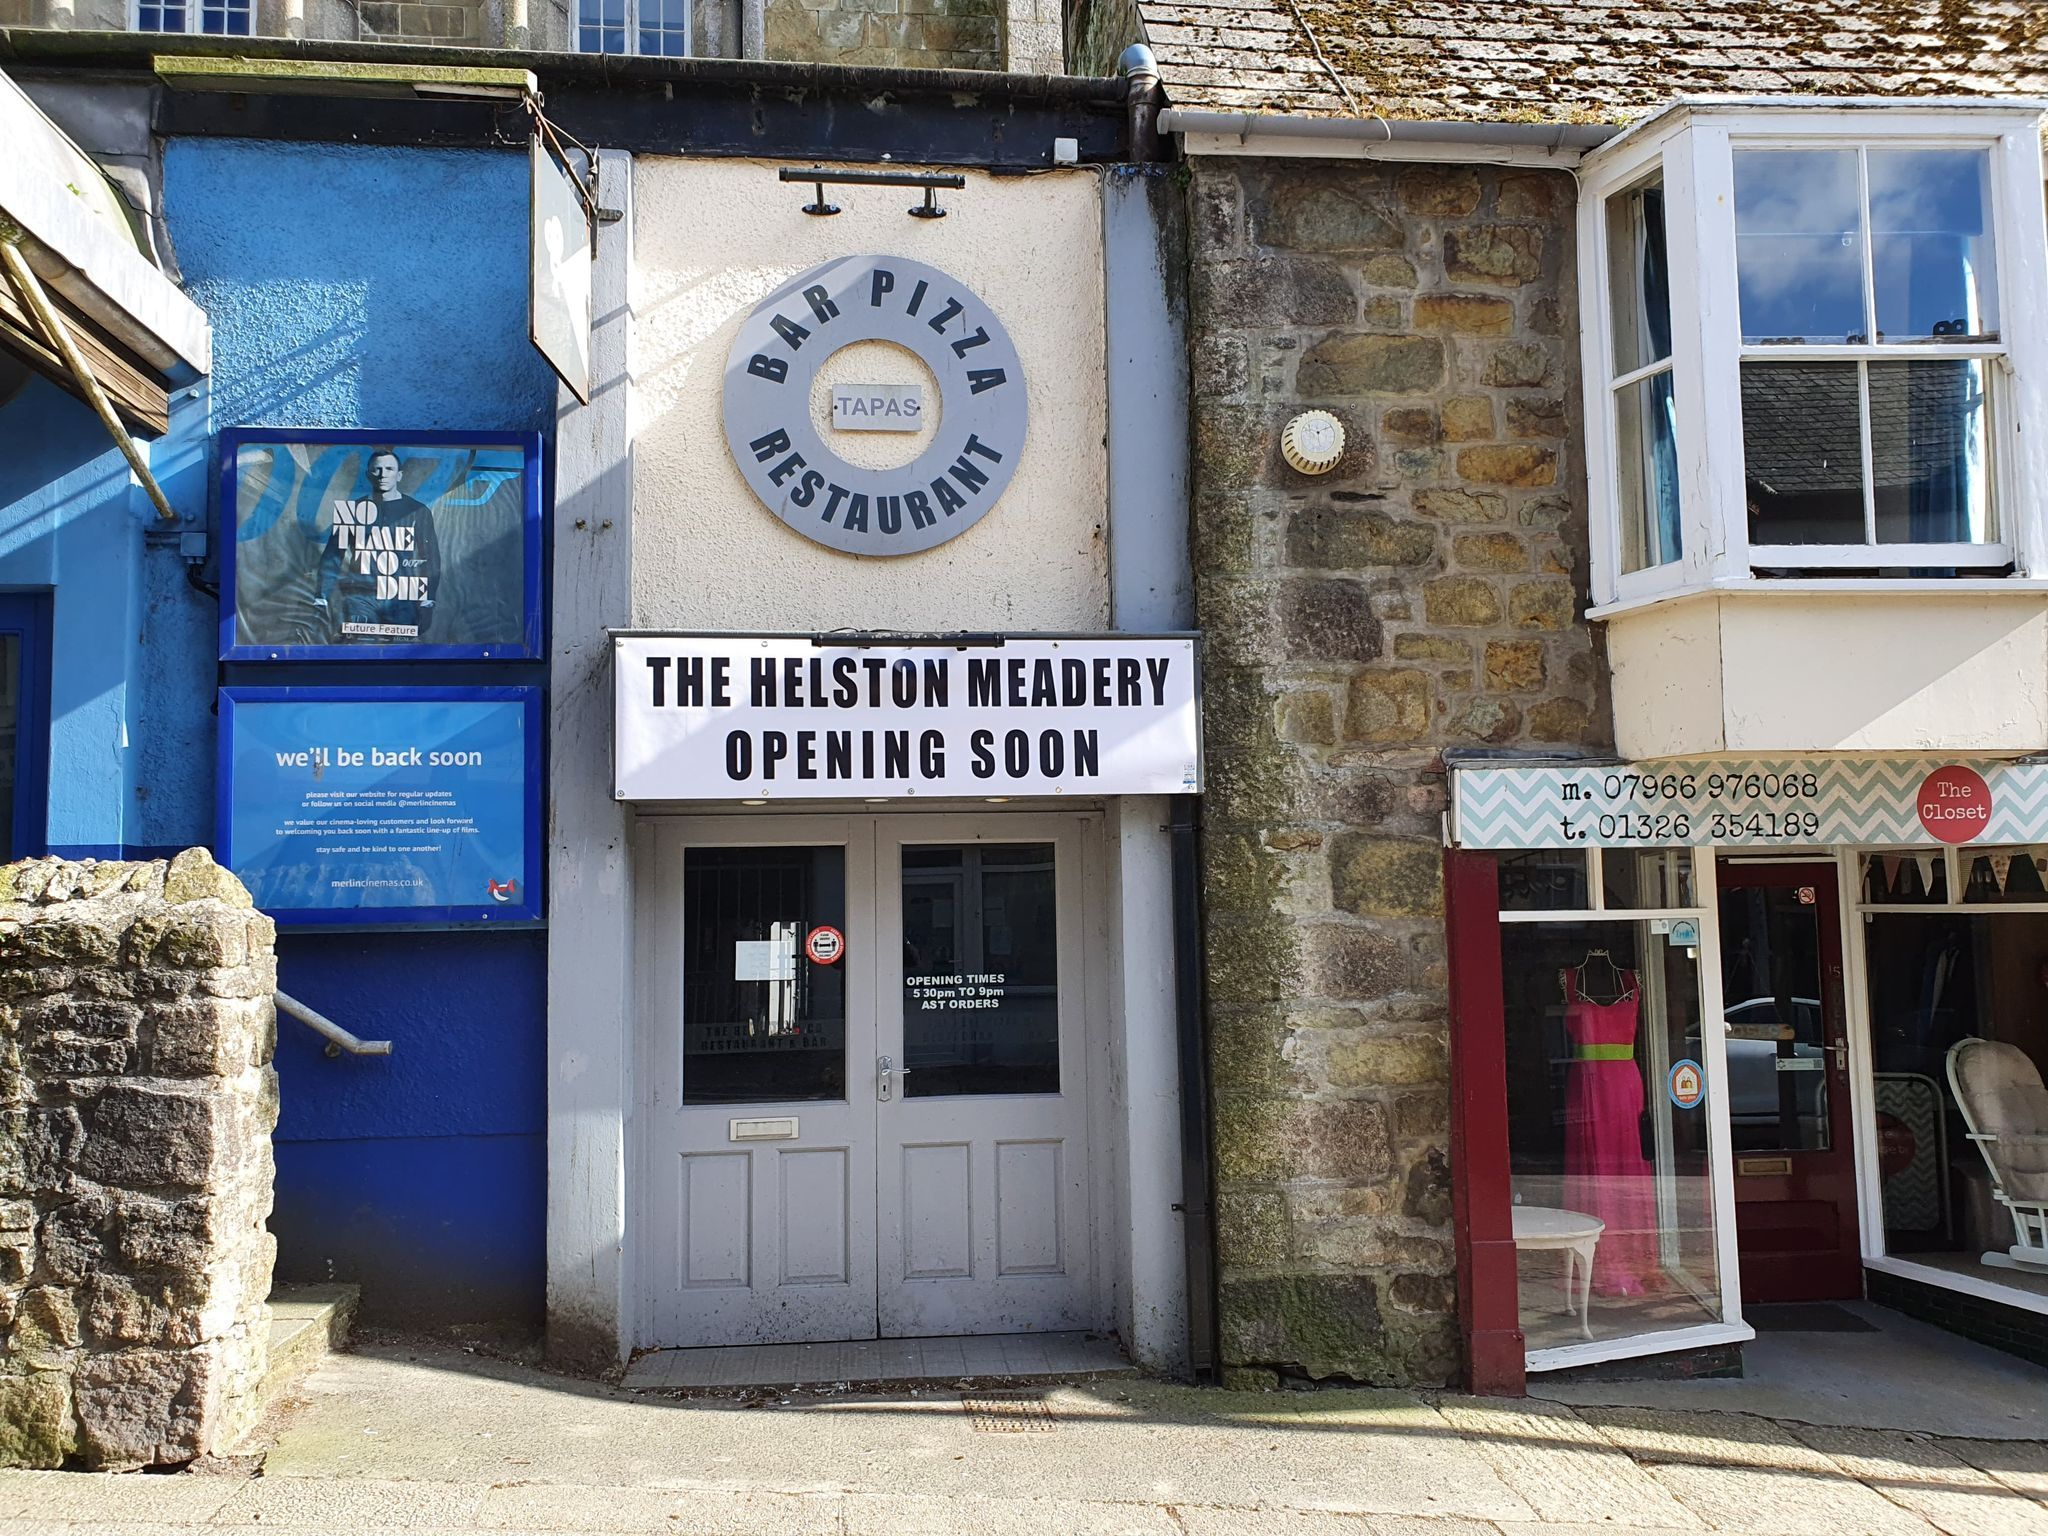 The Helston Meadery appears to be coming next to Flora Cinema